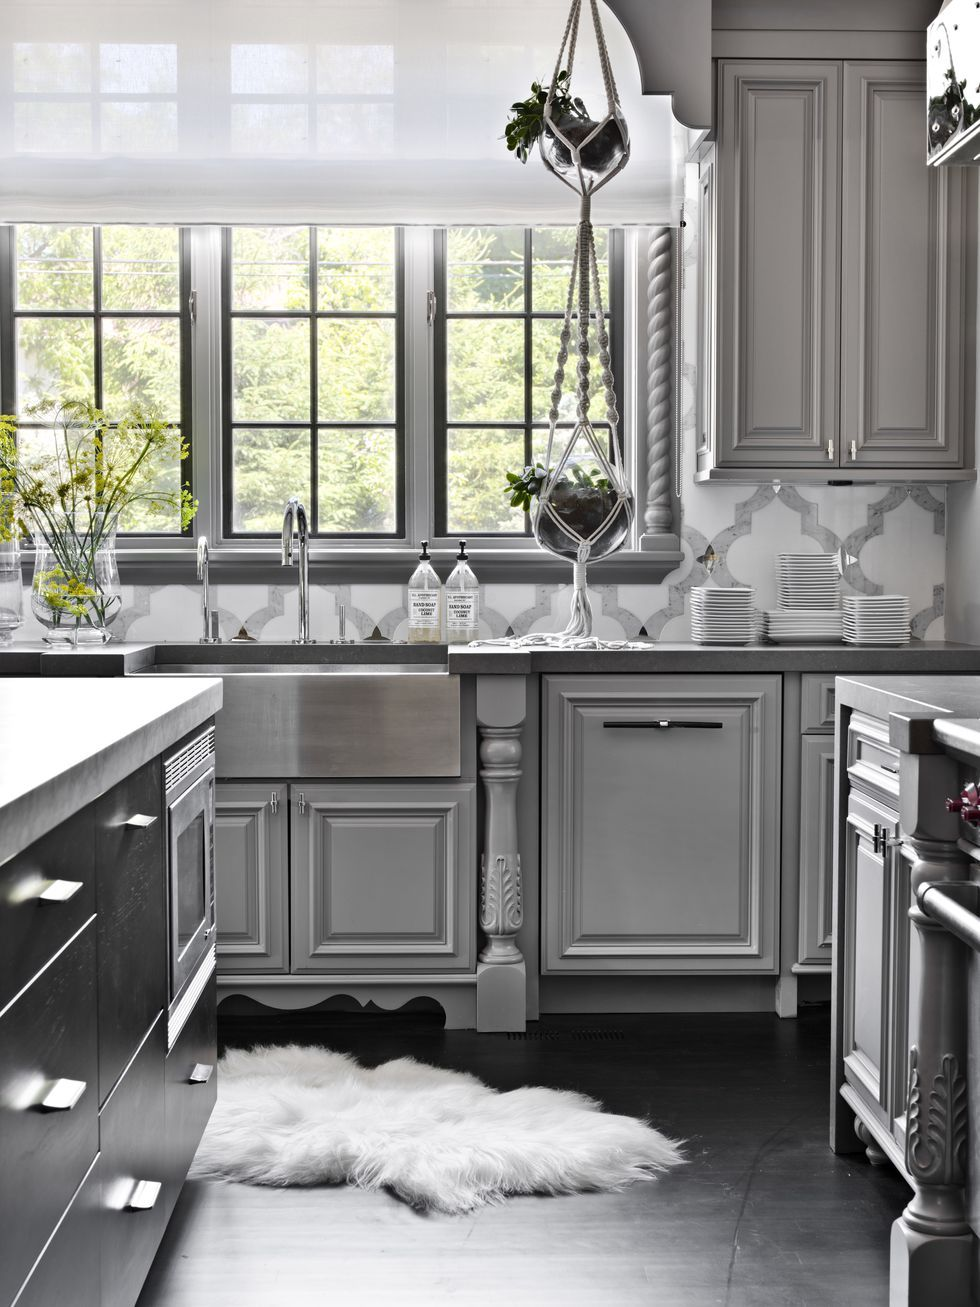 14 Best Grey Kitchen Cabinets , Design Ideas with Grey Cabinets